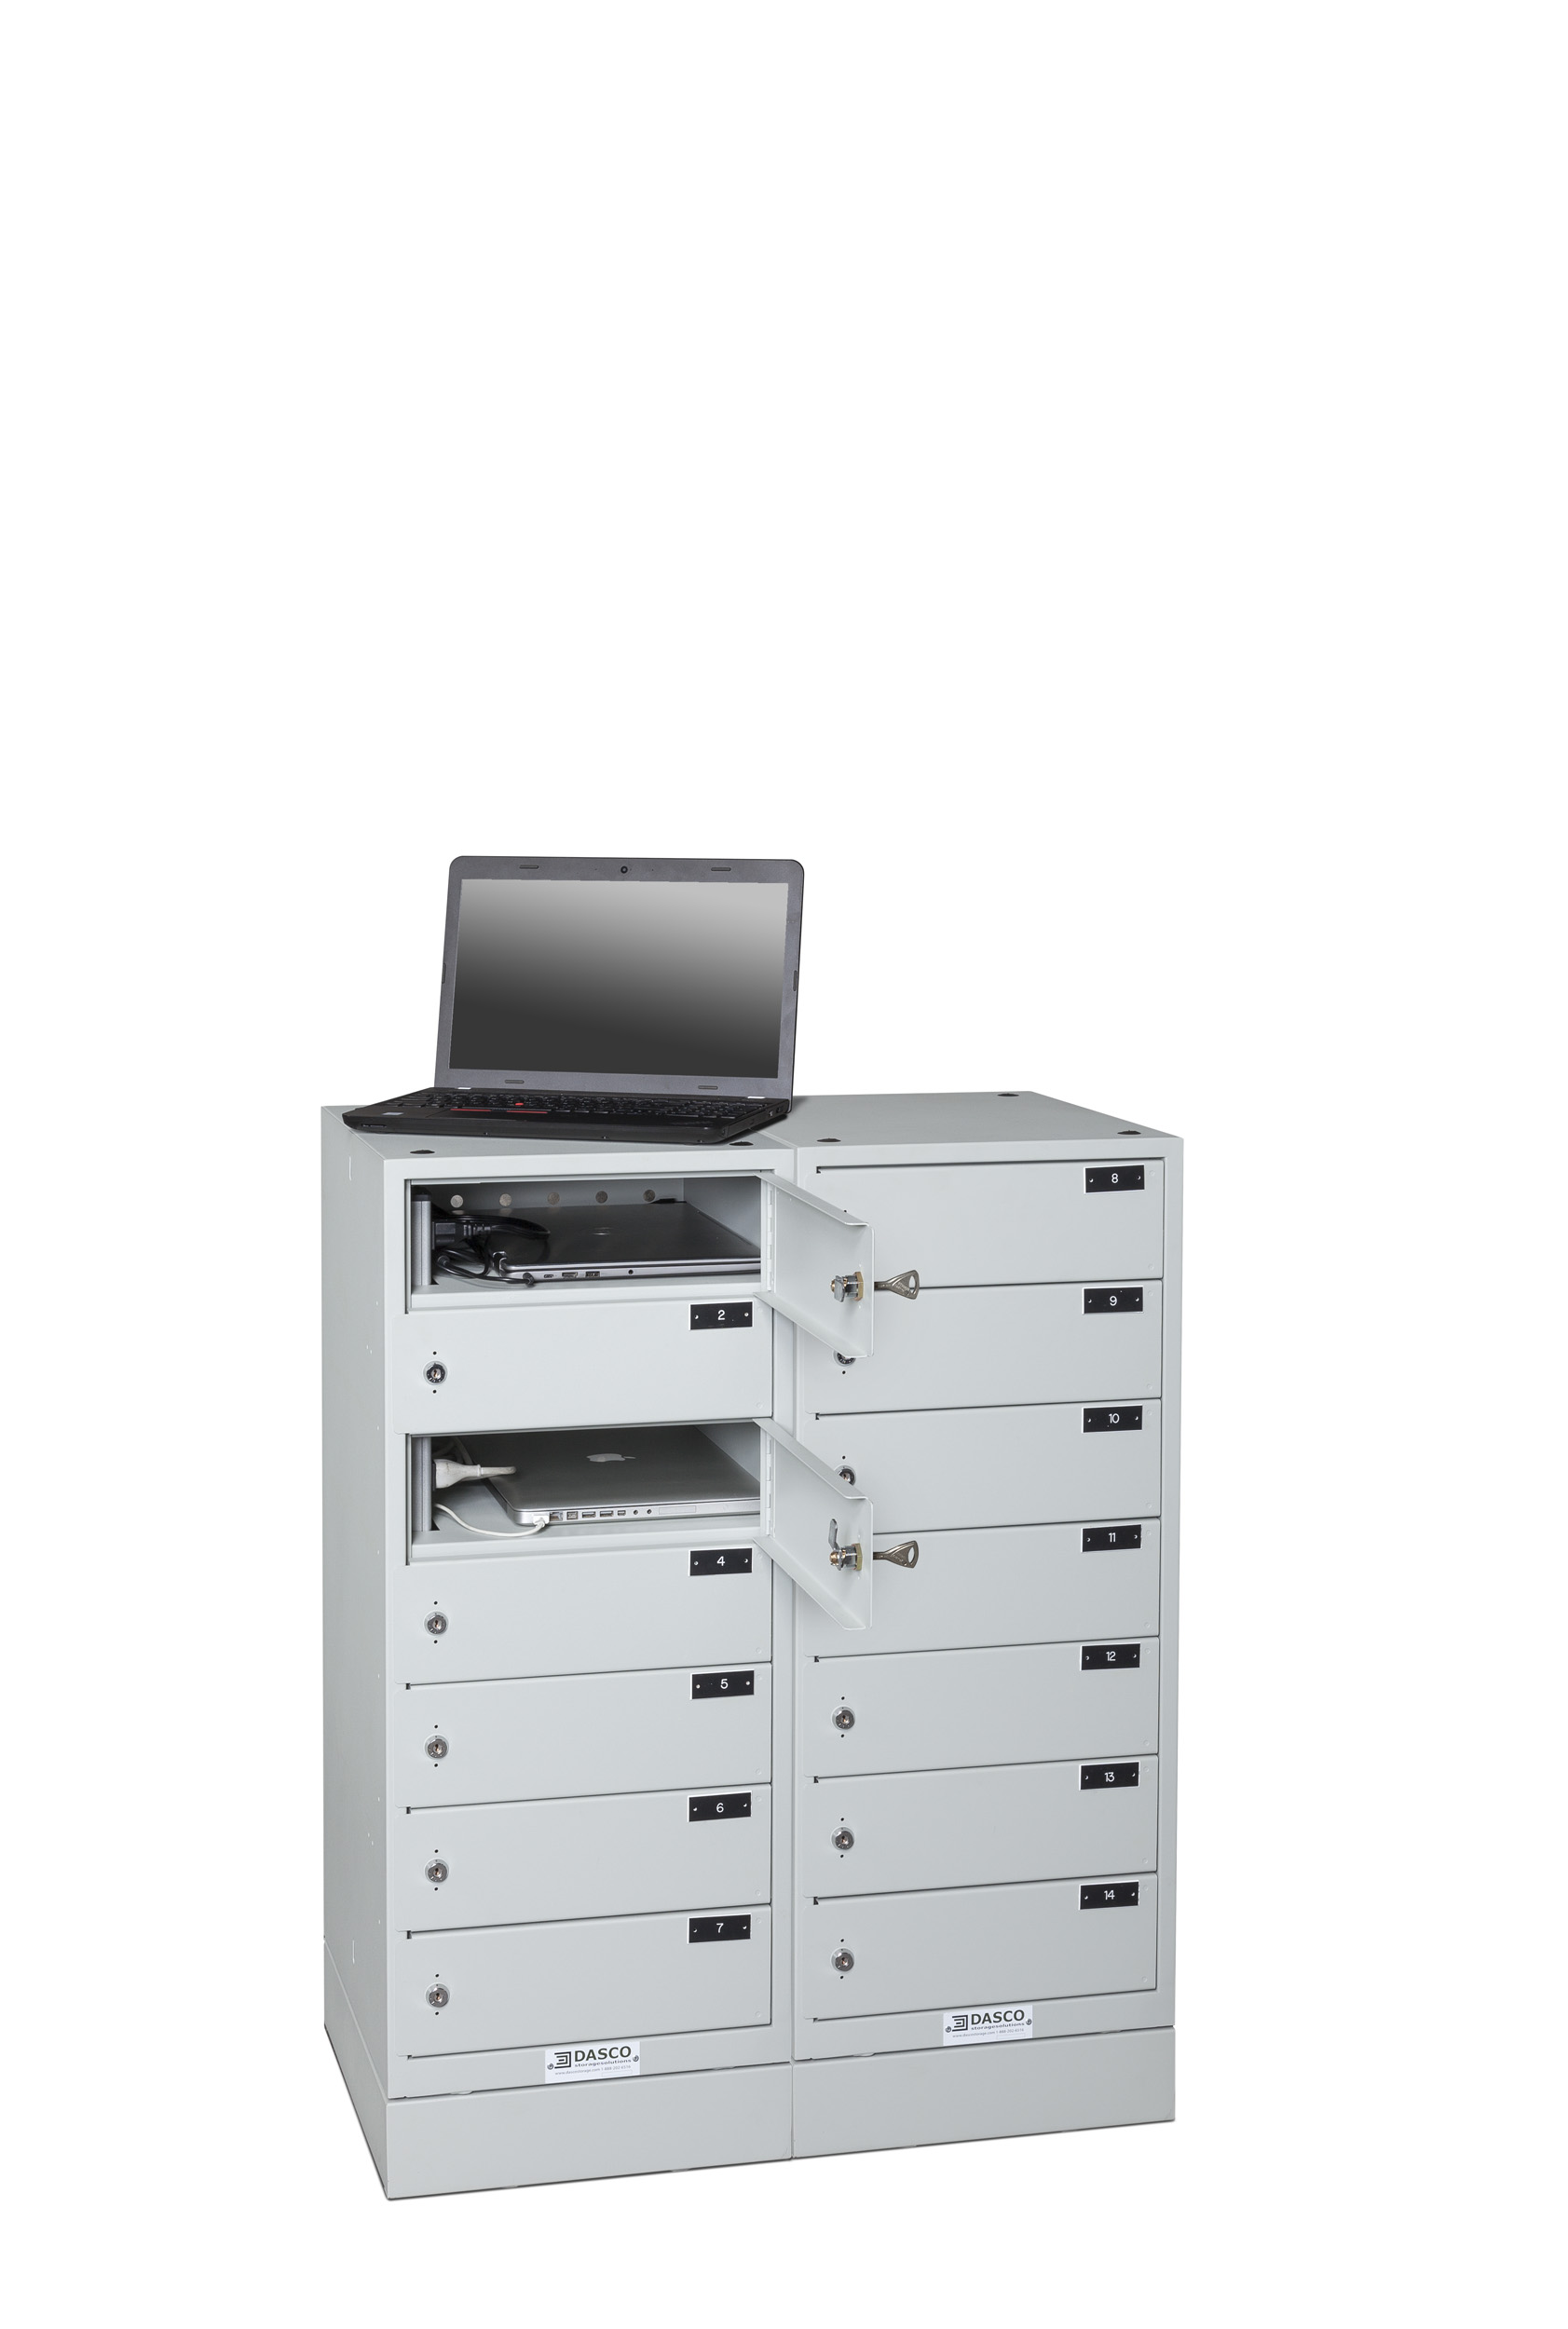 7-Compartment Laptop Tower Horizontal Bank